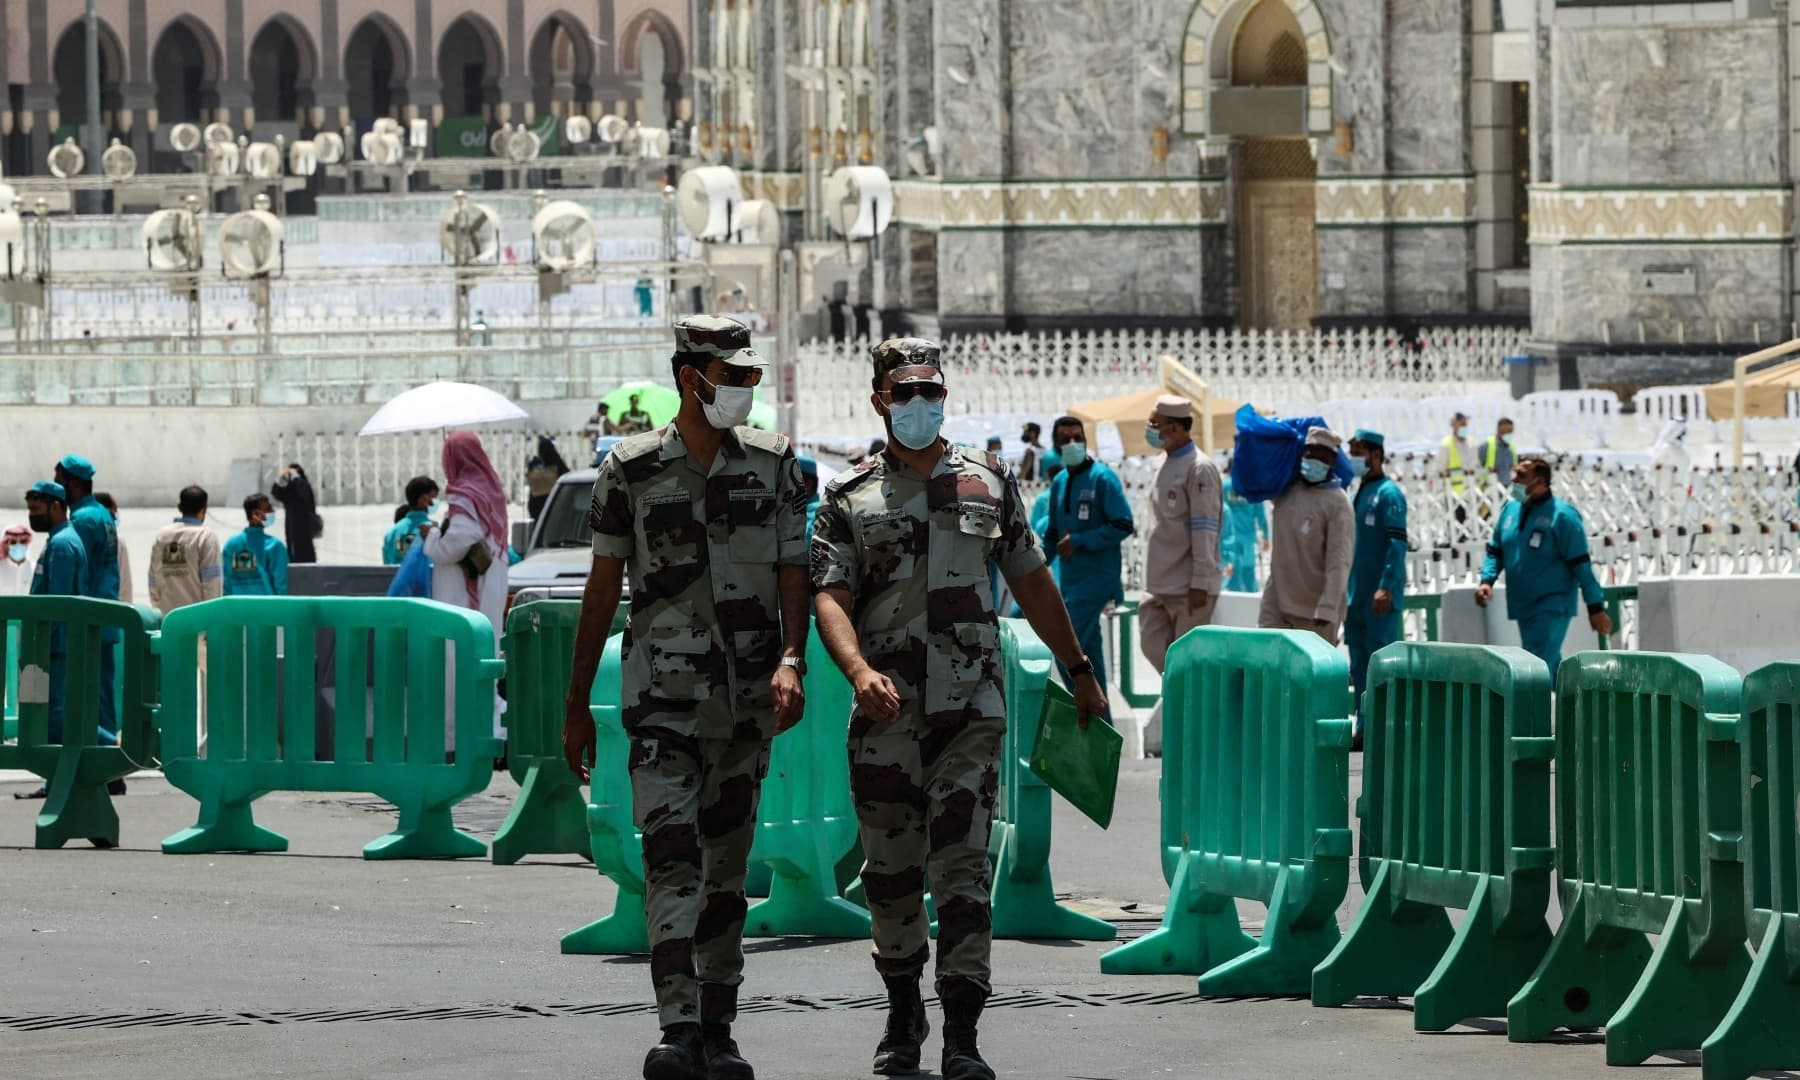 Mask-clad members of the Saudi security forces walk in the holy city of Makkah, Saudi Arabia, July 16, 2021. — AFP